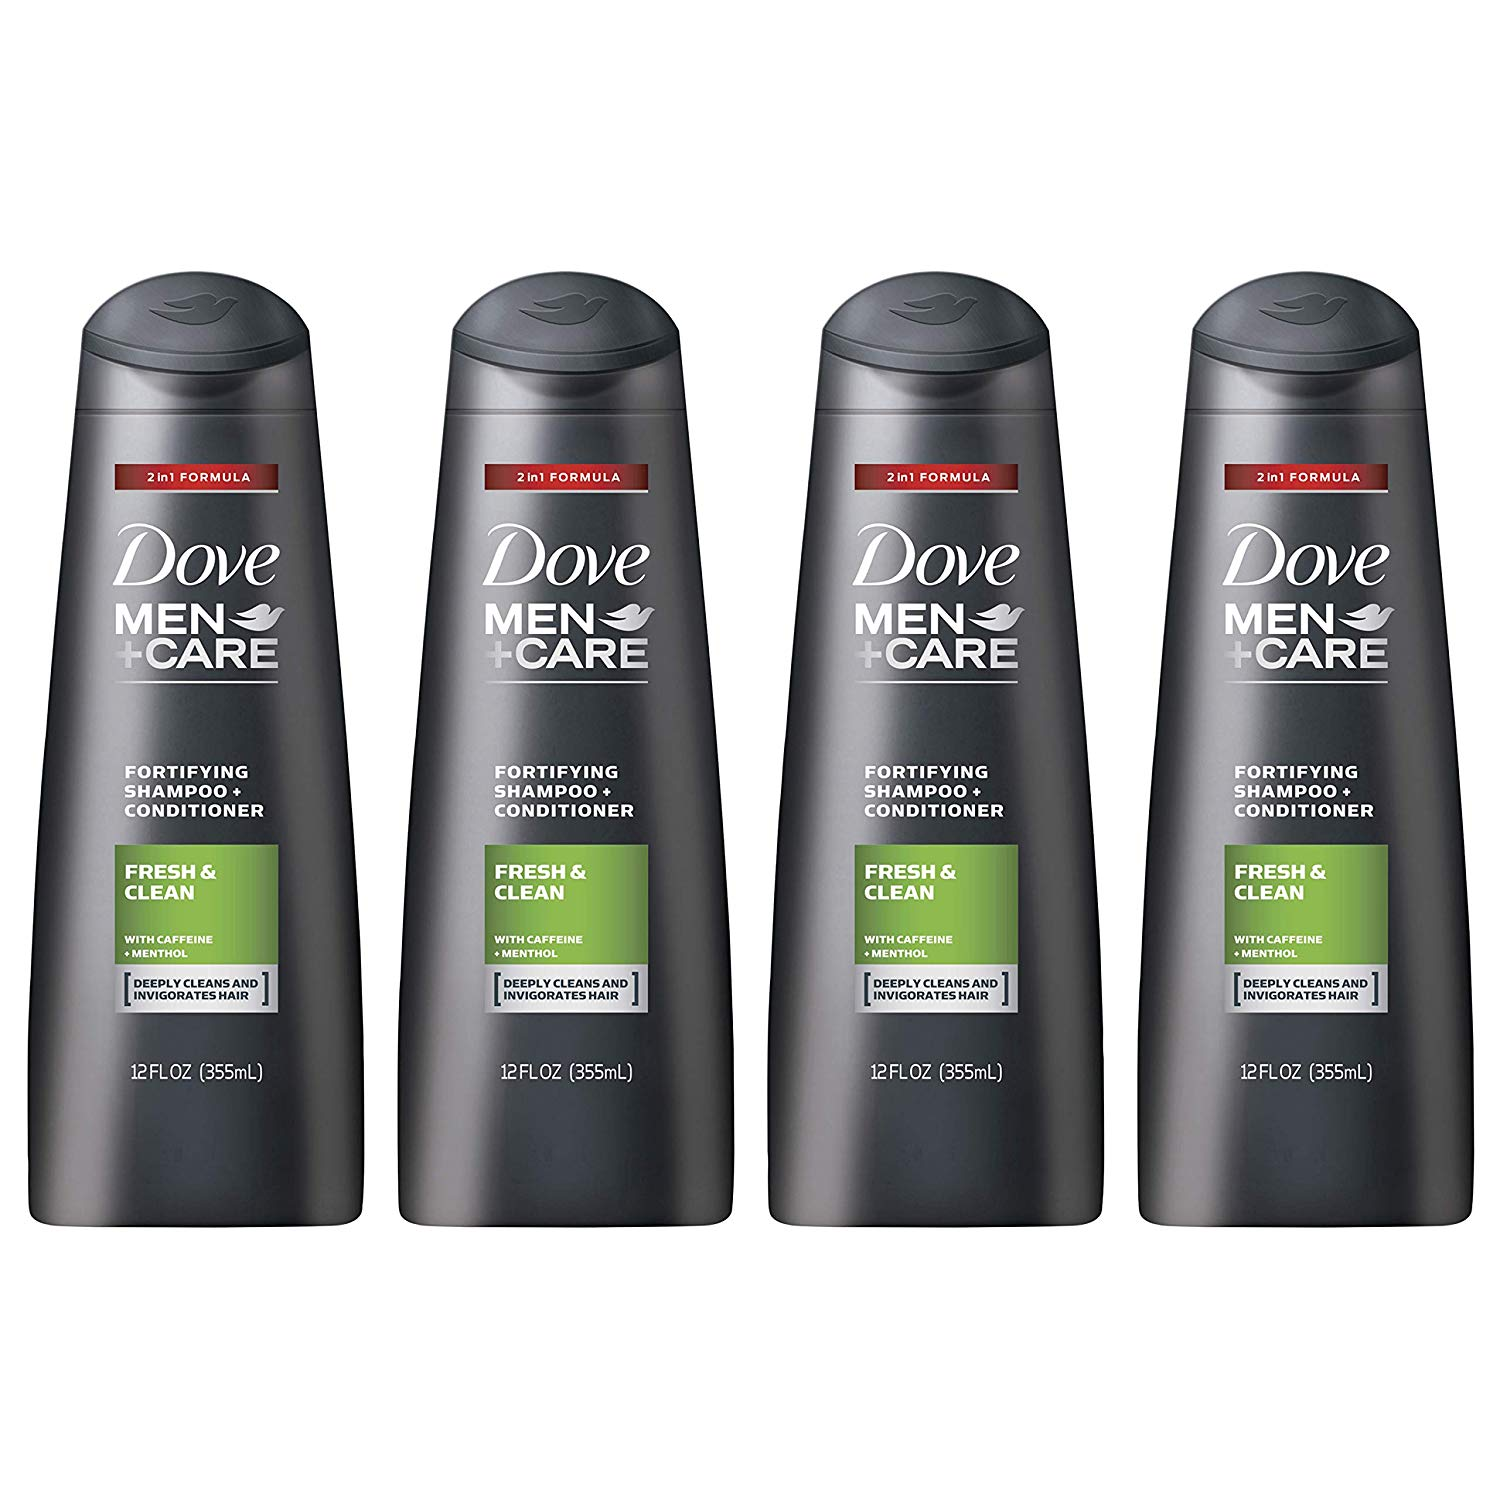 4-Count 12oz Dove Men+Care 2 in 1 Shampoo and Conditioner (Fresh and Clean) $9.05 + Free Shipping w/ Prime or FSSS